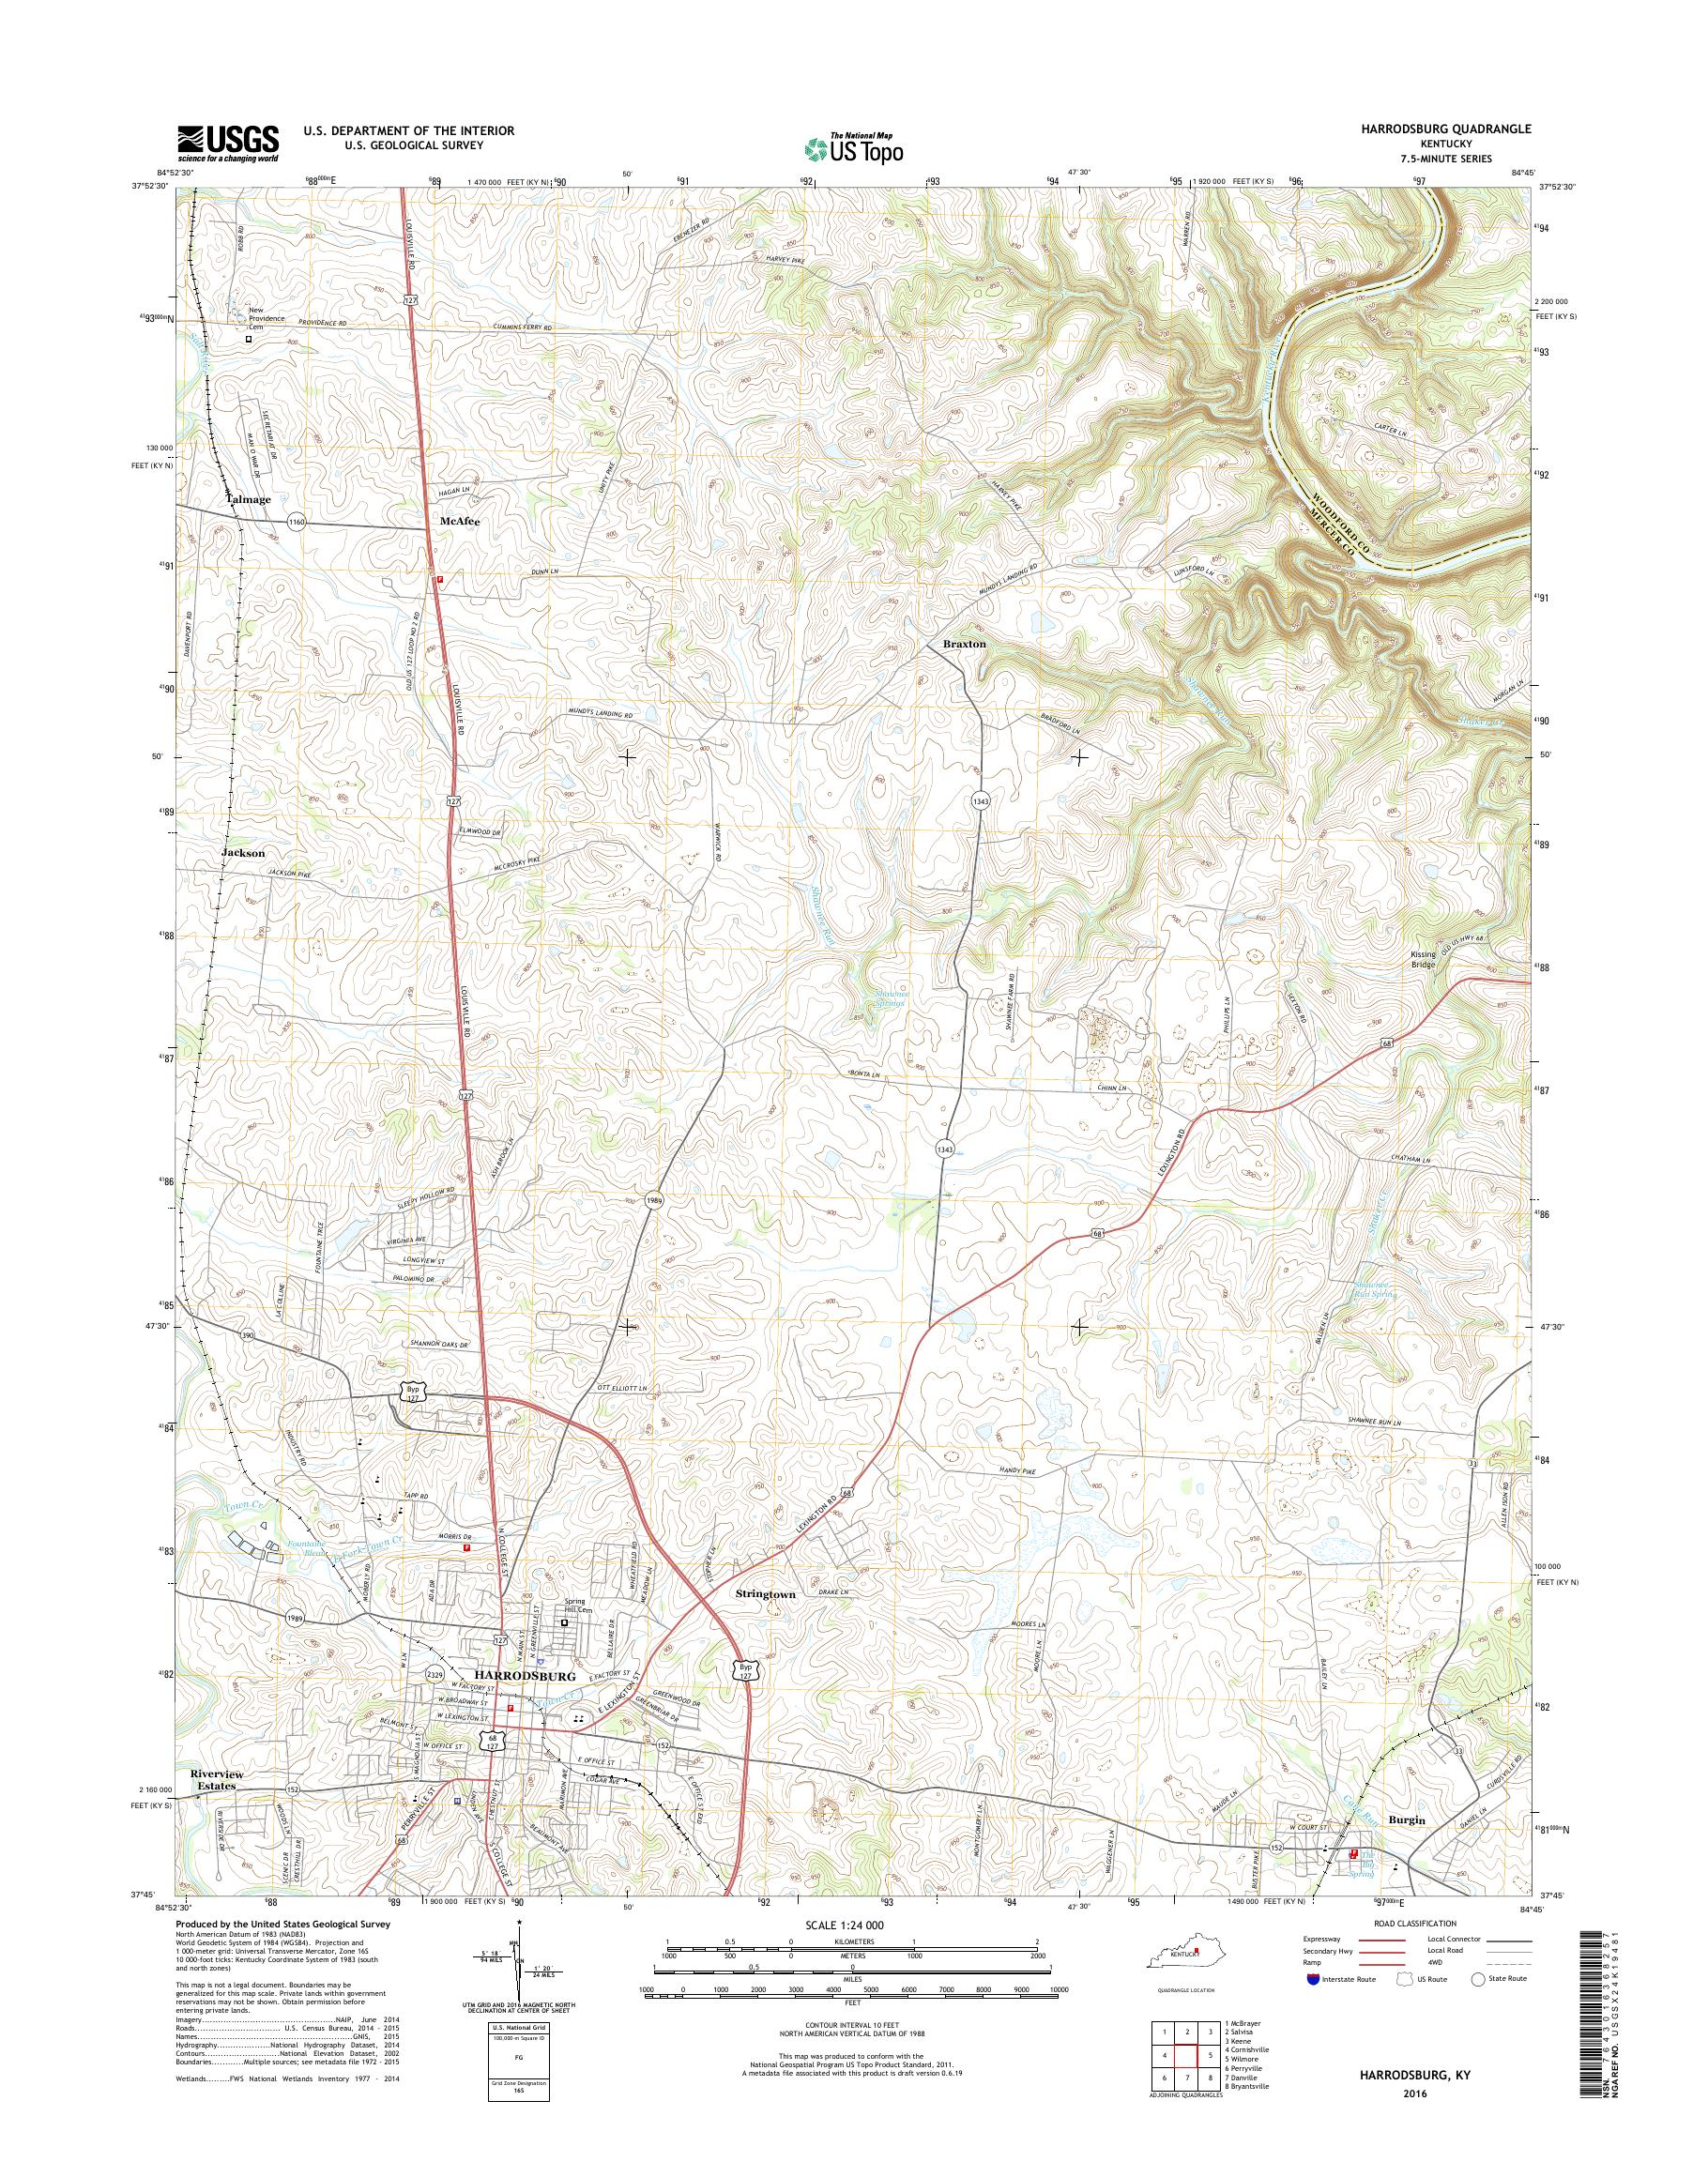 MyTopo Harrodsburg, Kentucky USGS Quad Topo Map on i 64 kentucky map, kentucky transport map, kentucky travel map, kentucky points of interest map, kentucky conference map, murray ky location on map, kentucky park map, kentucky freeway map, ohio kentucky tennessee map, southeast kentucky map, kentucky utility map, kentucky parkways map, louisville kentucky indiana map, i-65 kentucky map, i-75 kentucky map, kentucky on us map, kentucky city map, kentucky counties, kentucky maps online, florida i-75 mile marker map,